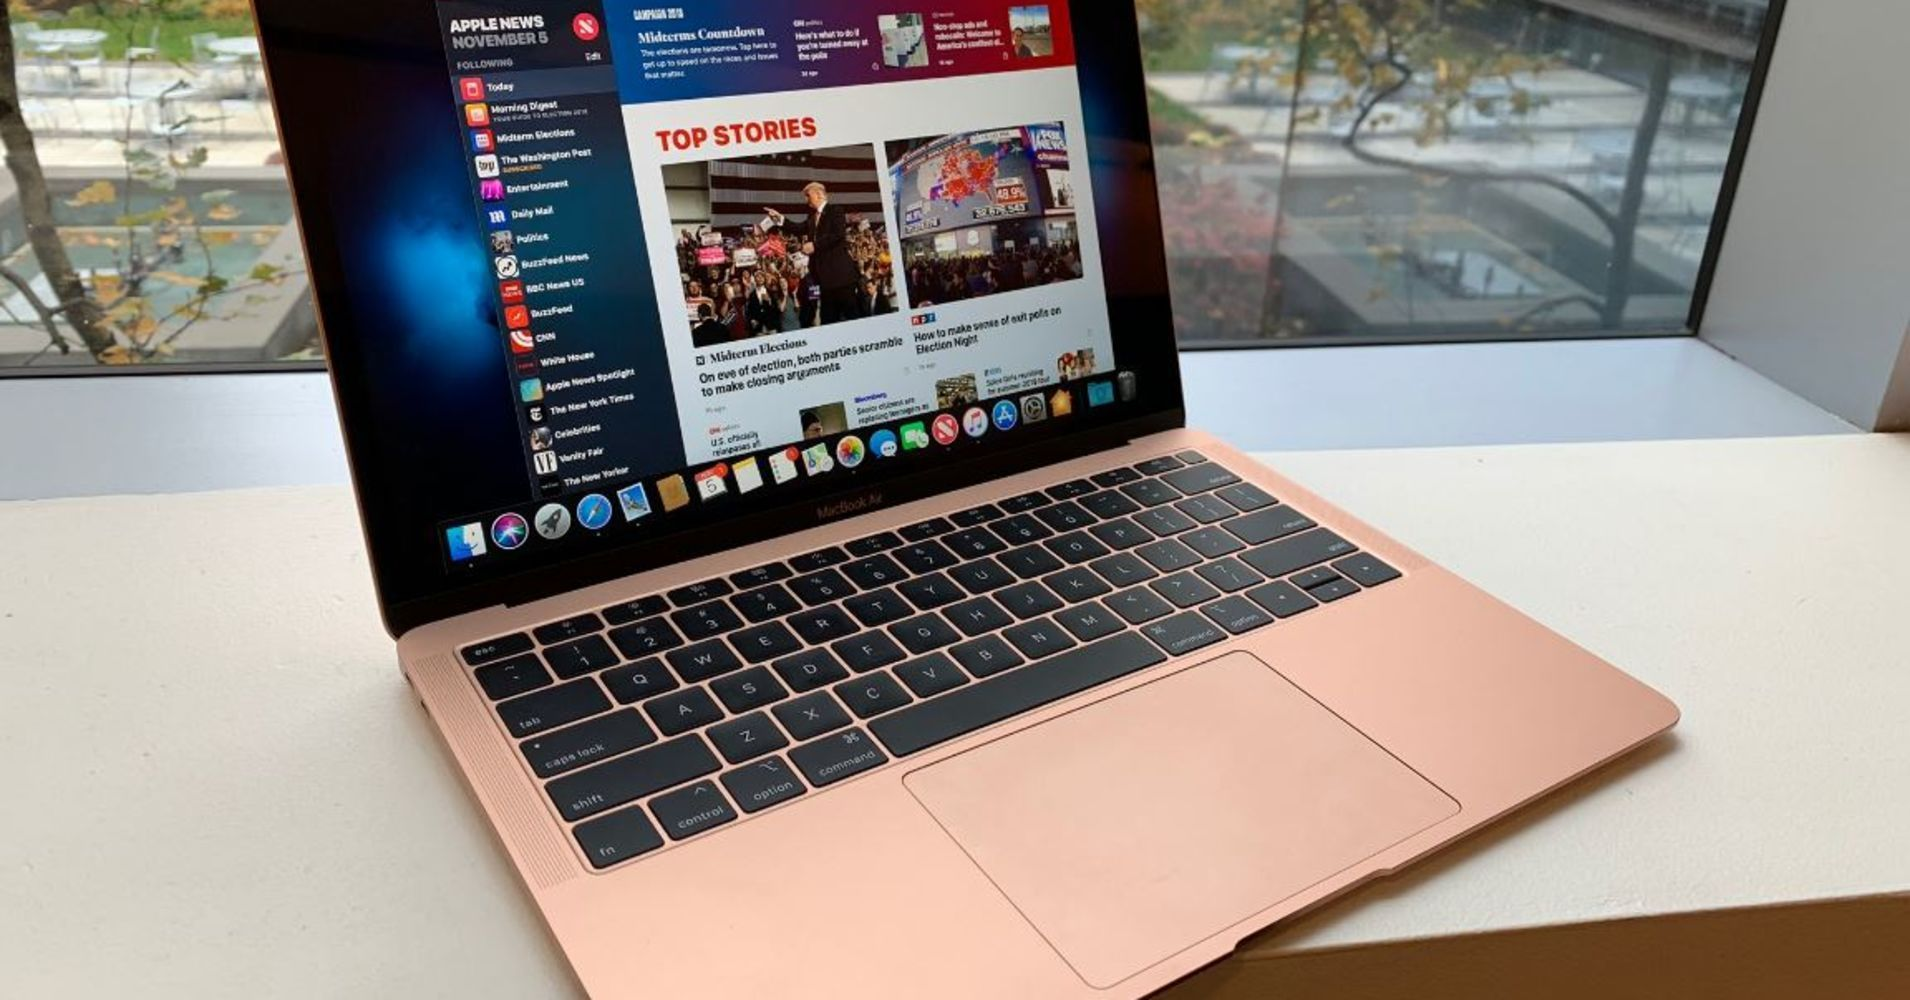 The New Macbook Air Is What Fans Have Been Clamoring For And Could Rescue Apple From Flat Mac Sales In 2020 New Macbook Air Macbook Air New Macbook